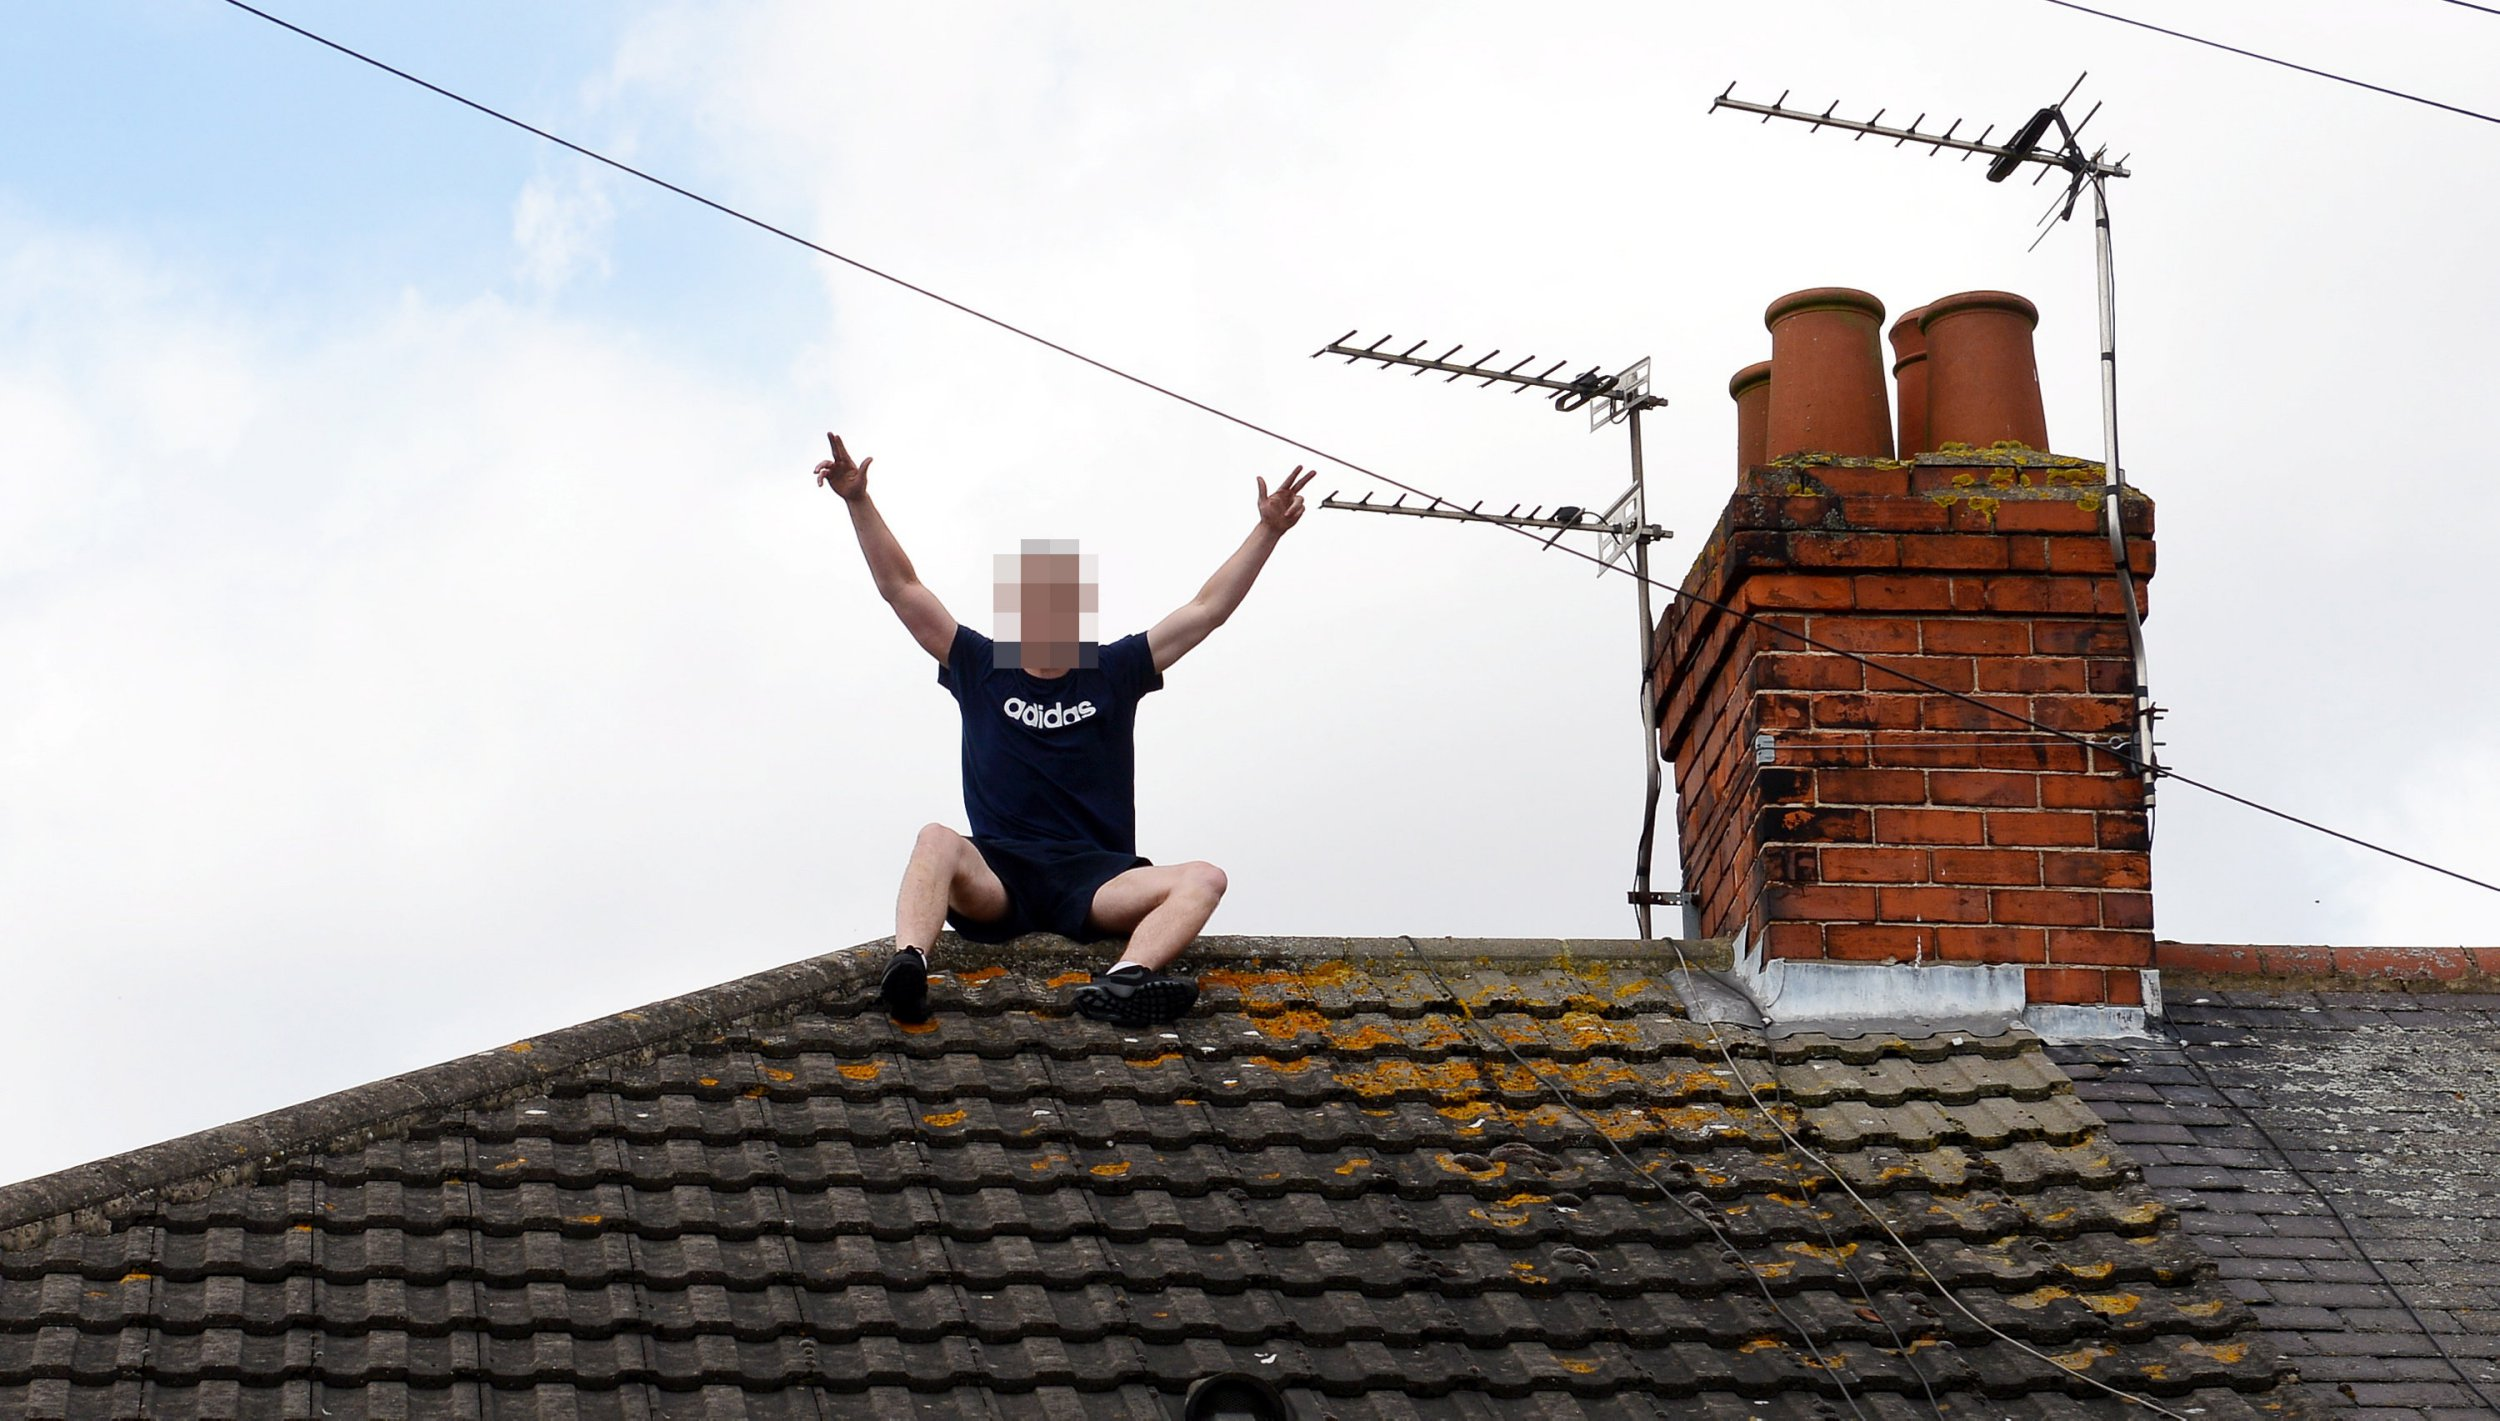 Police abandon arrest of suspect after he climbs onto his own roof